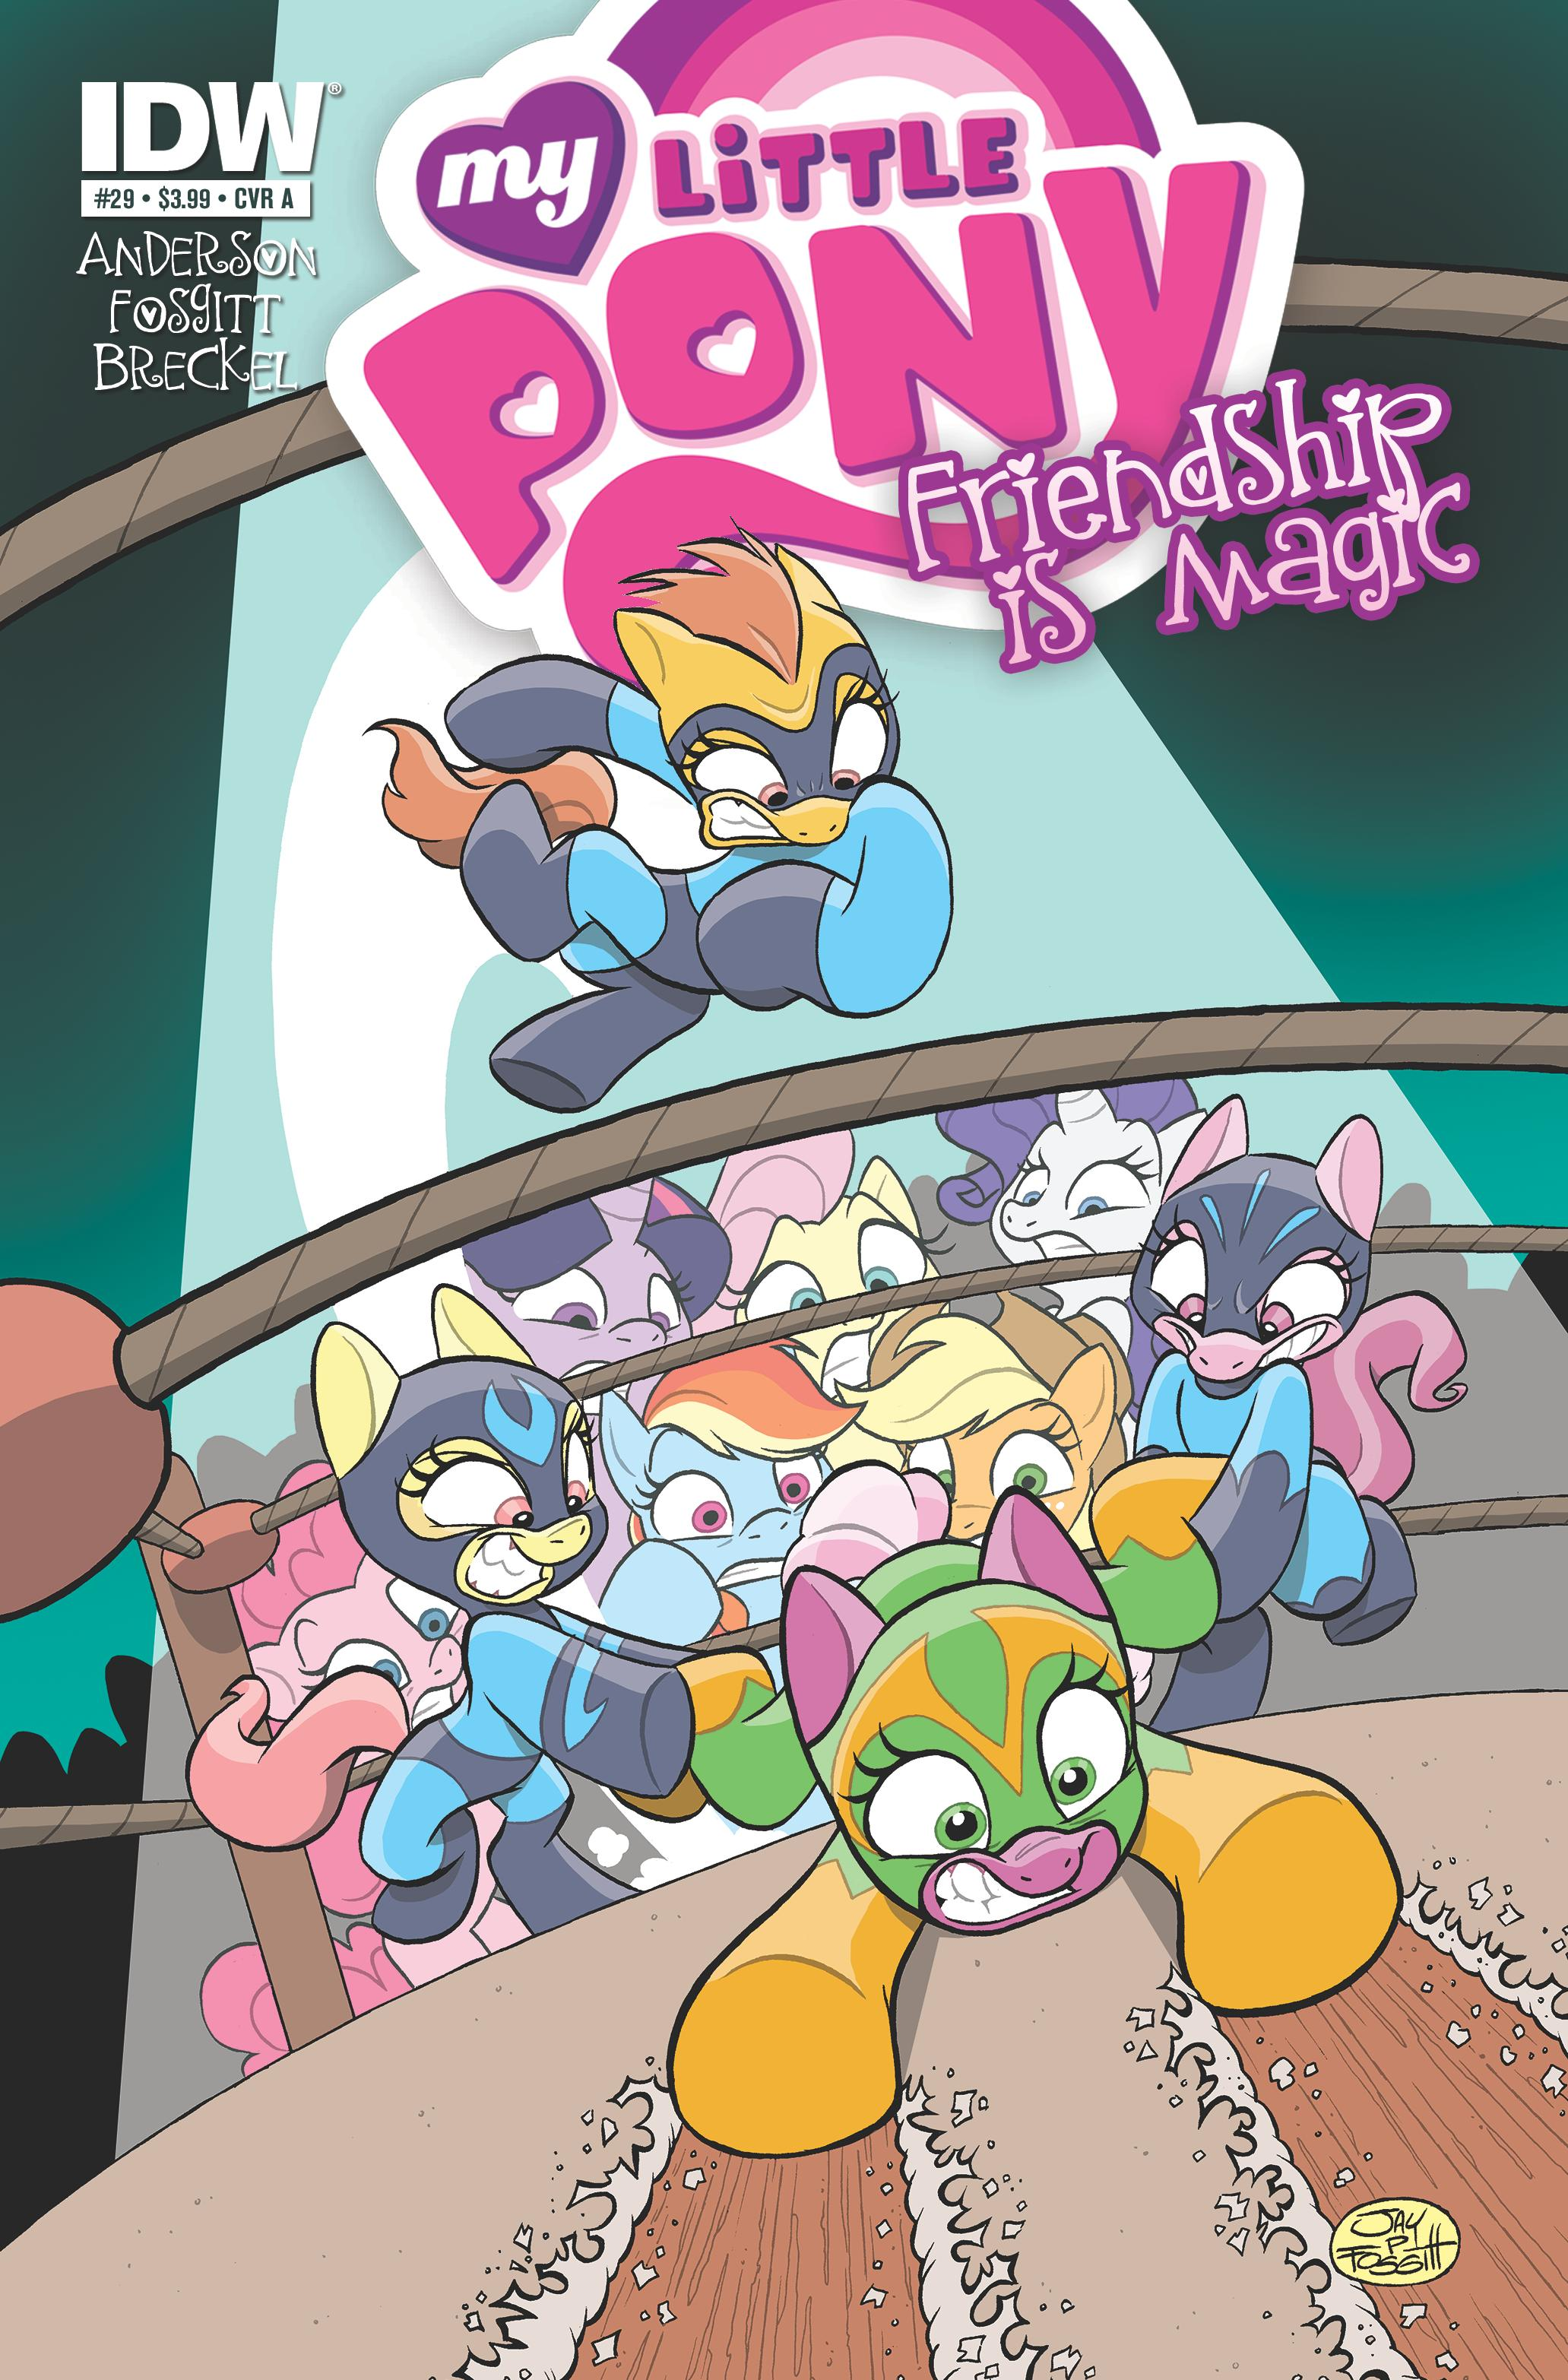 Friendship is Magic Issue 29